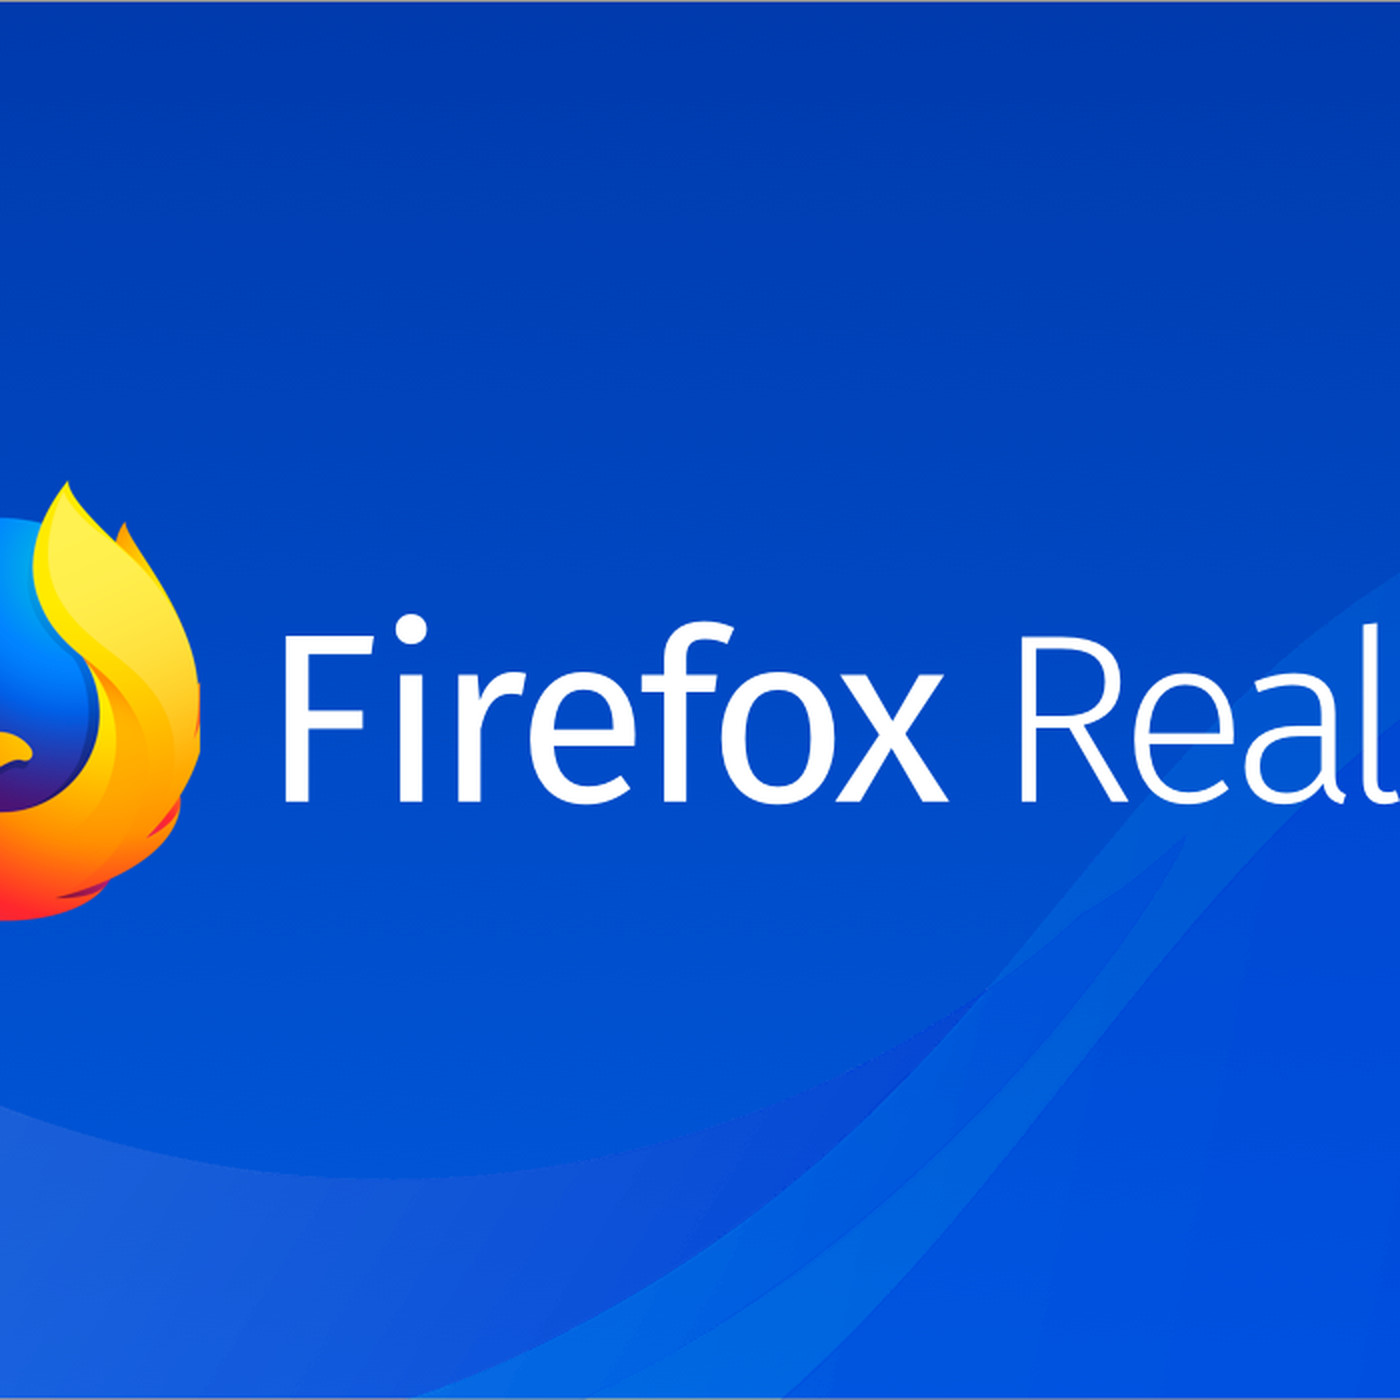 There's a new version of Firefox for virtual reality - The Verge